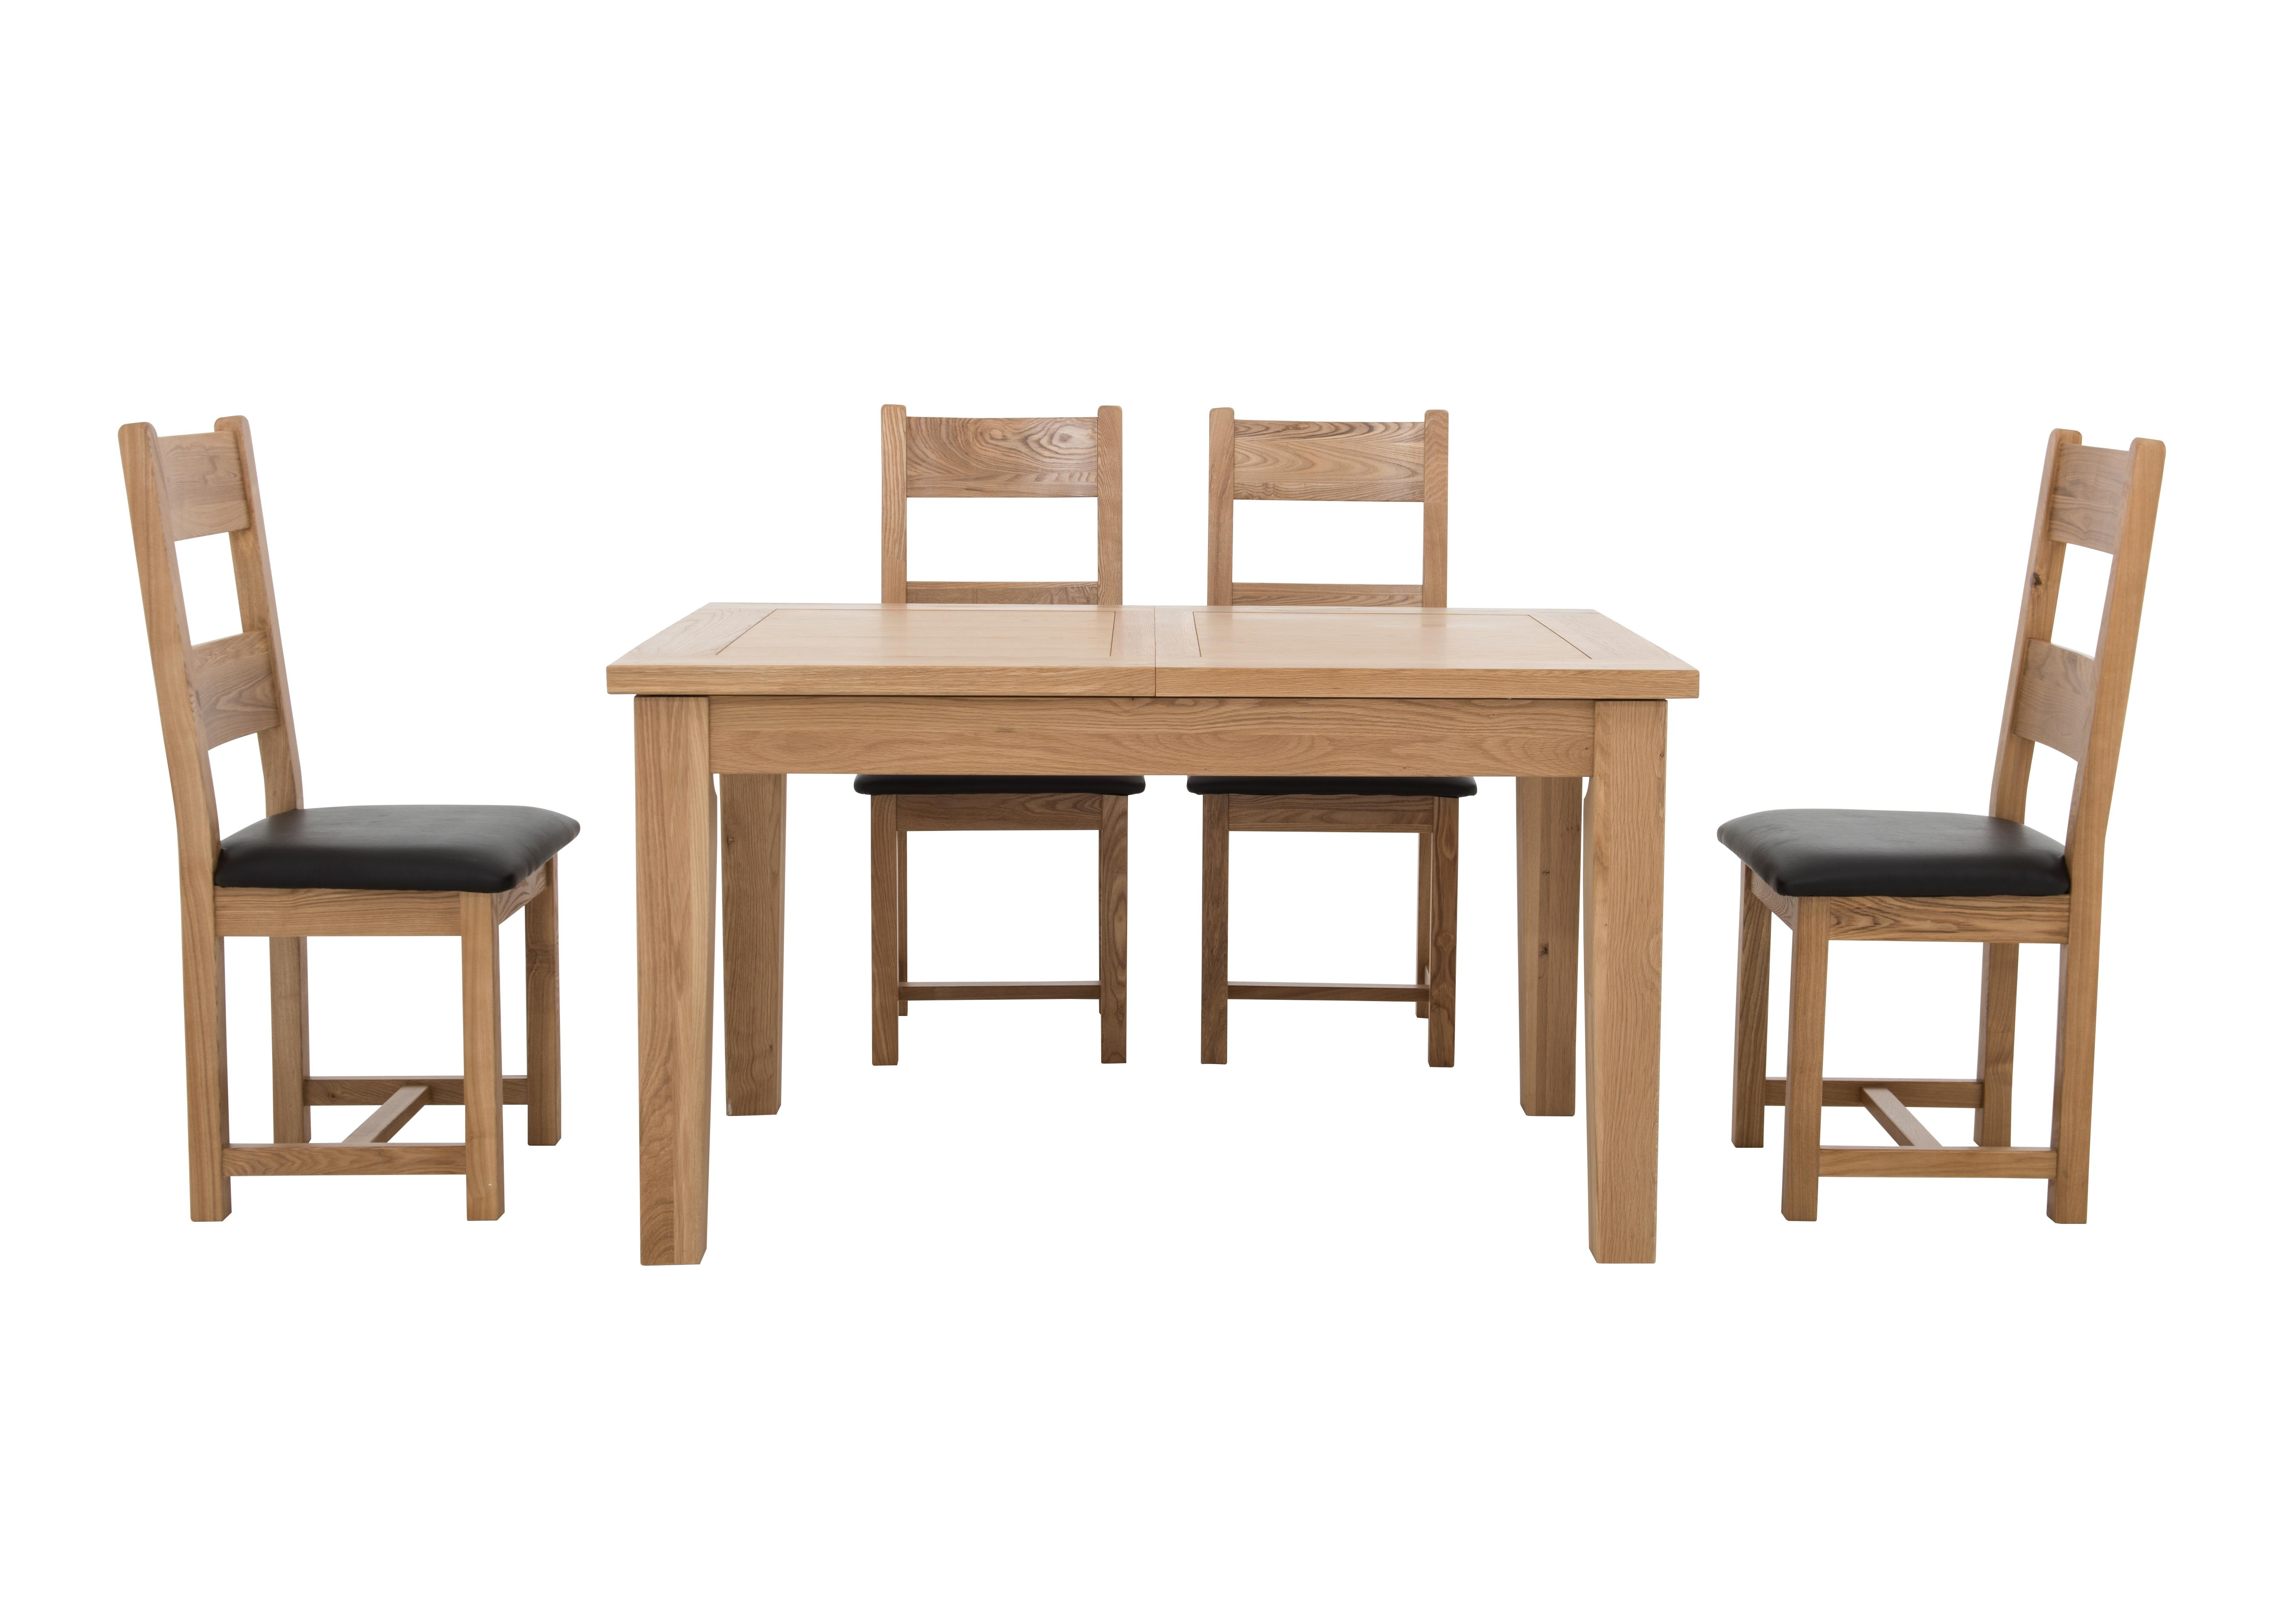 sc 1 st  Furniture Village : dining room table and chairs - lorbestier.org